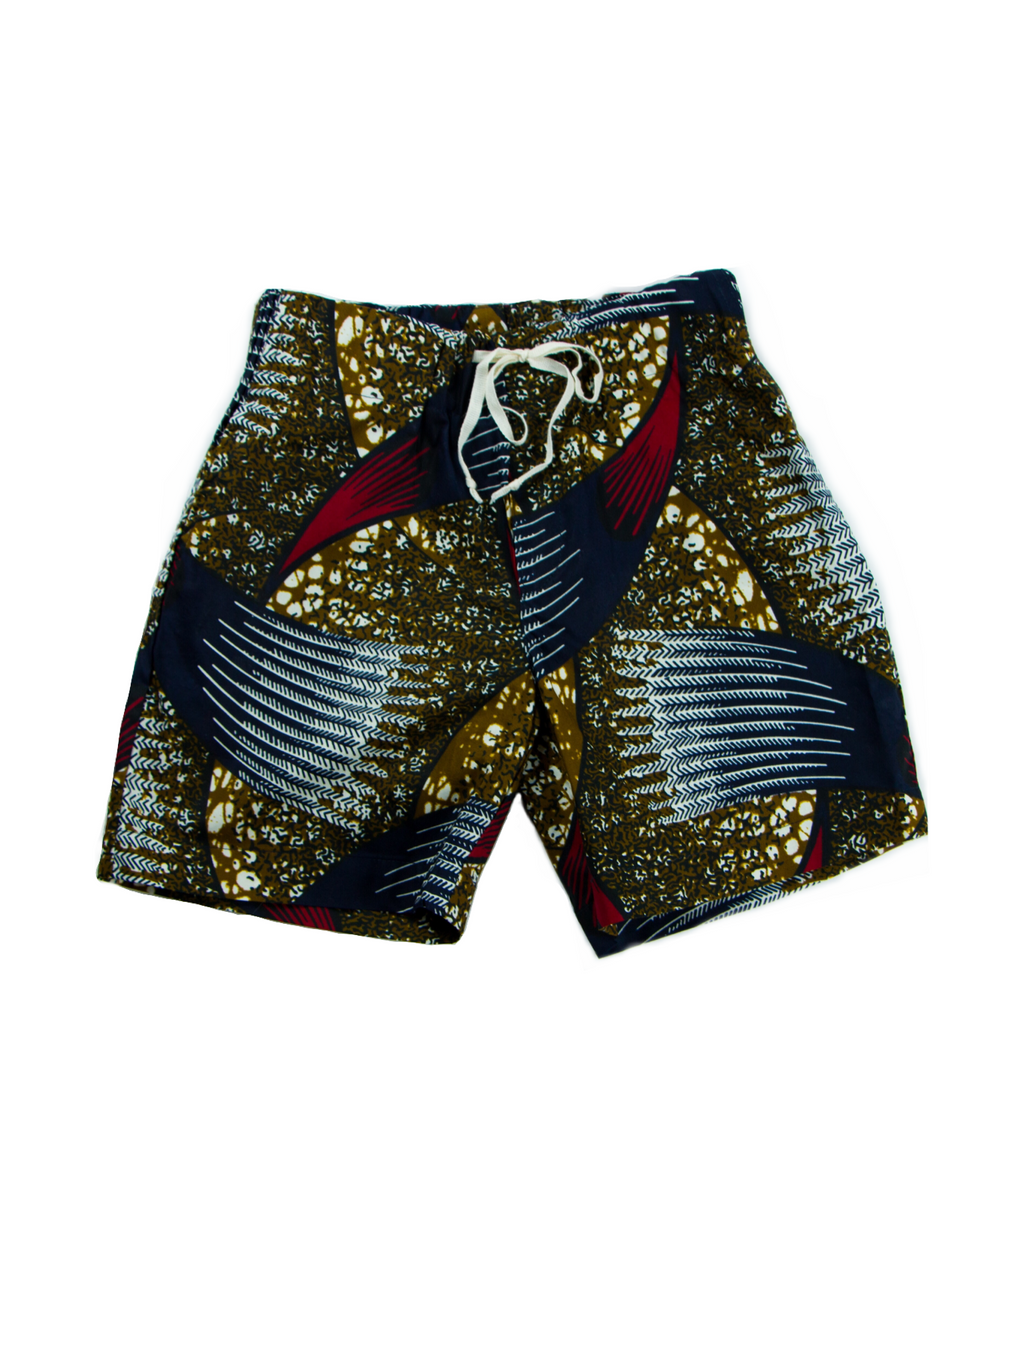 Boys Karter Shorts - Chen Burkett New York